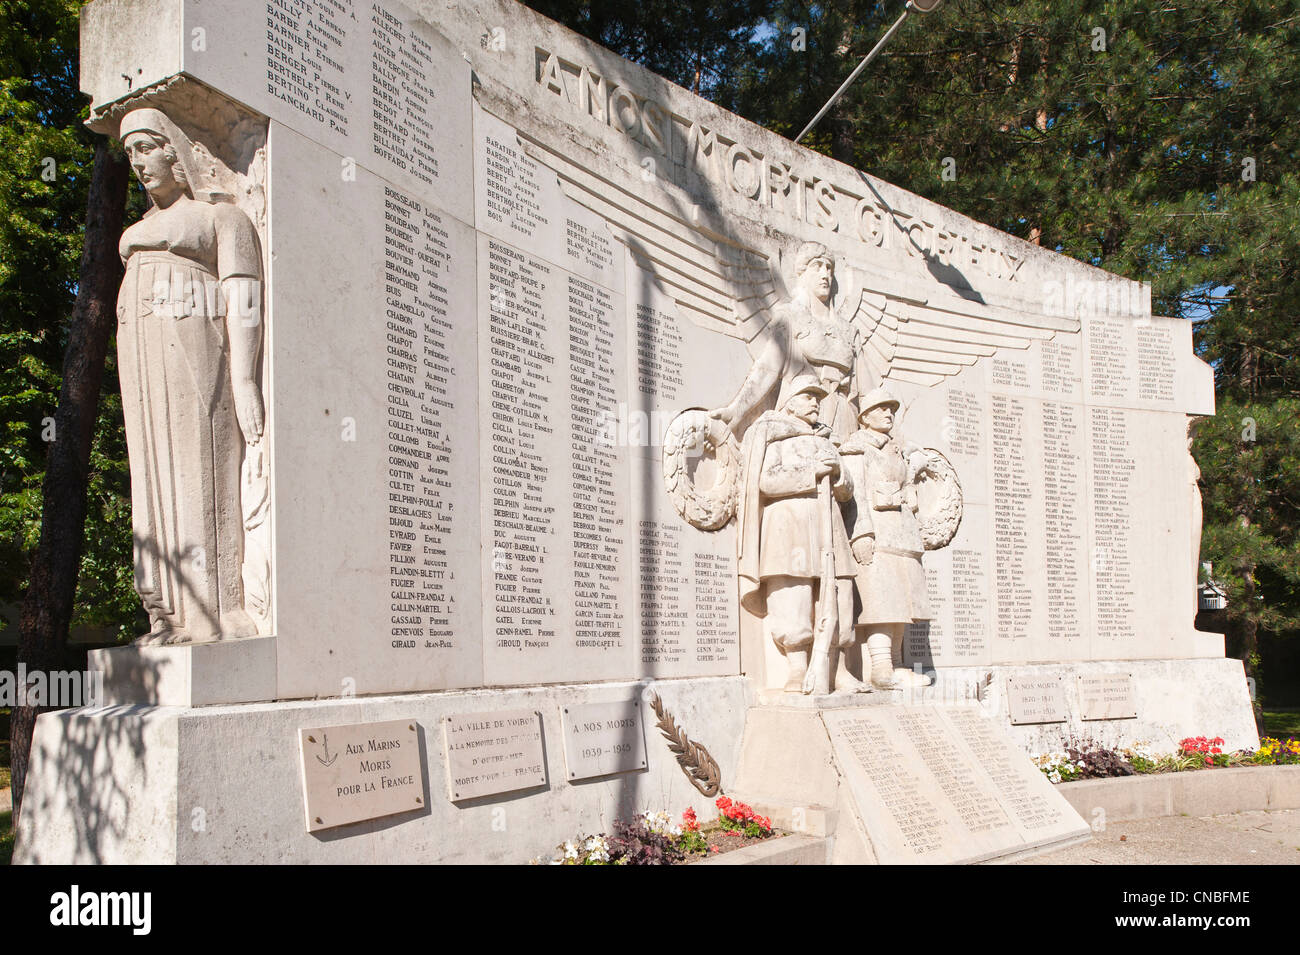 https://c8.alamy.com/comp/CNBFME/france-isere-voiron-the-city-garden-the-war-memorial-by-the-sculptor-CNBFME.jpg